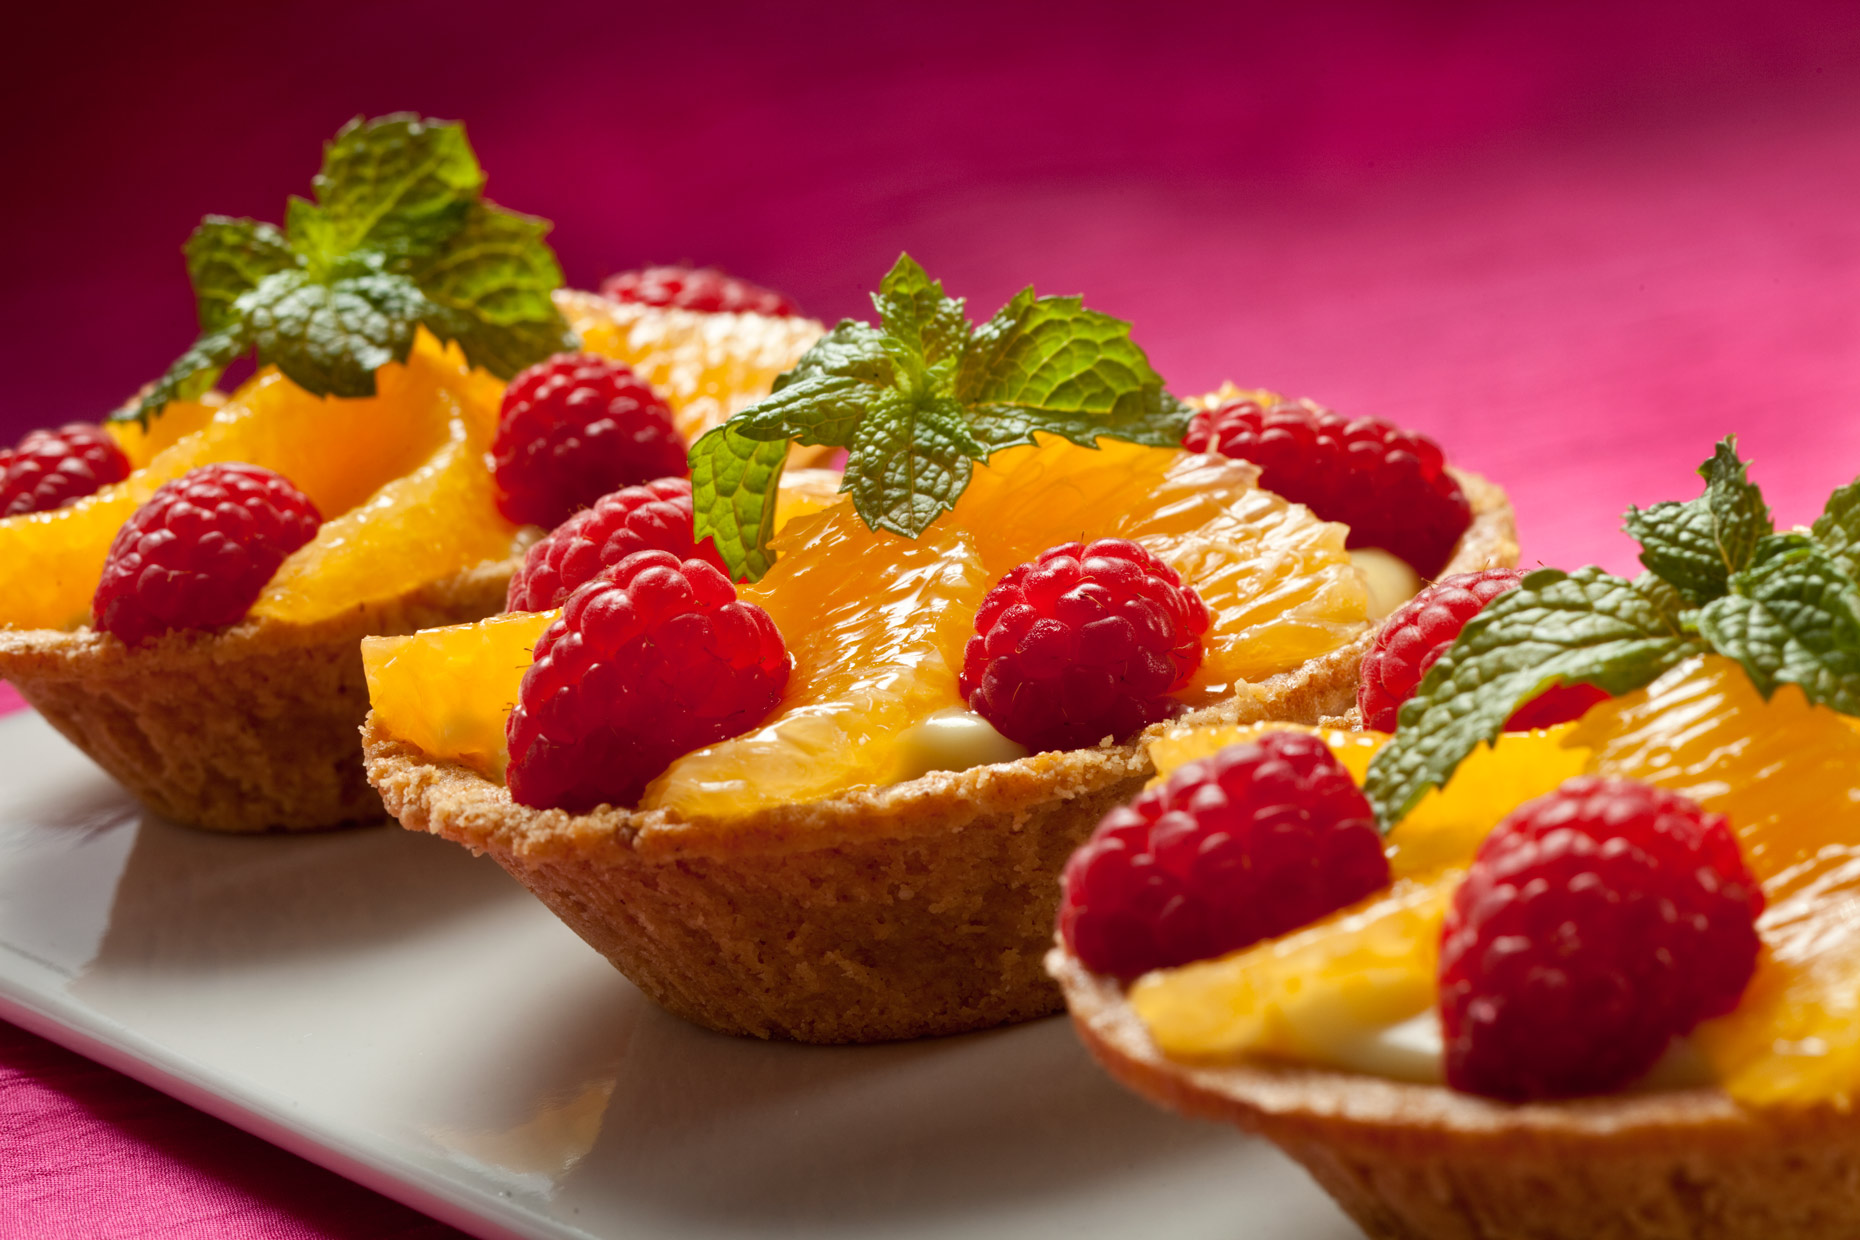 Dessert Photography | Tarts with Raspberries